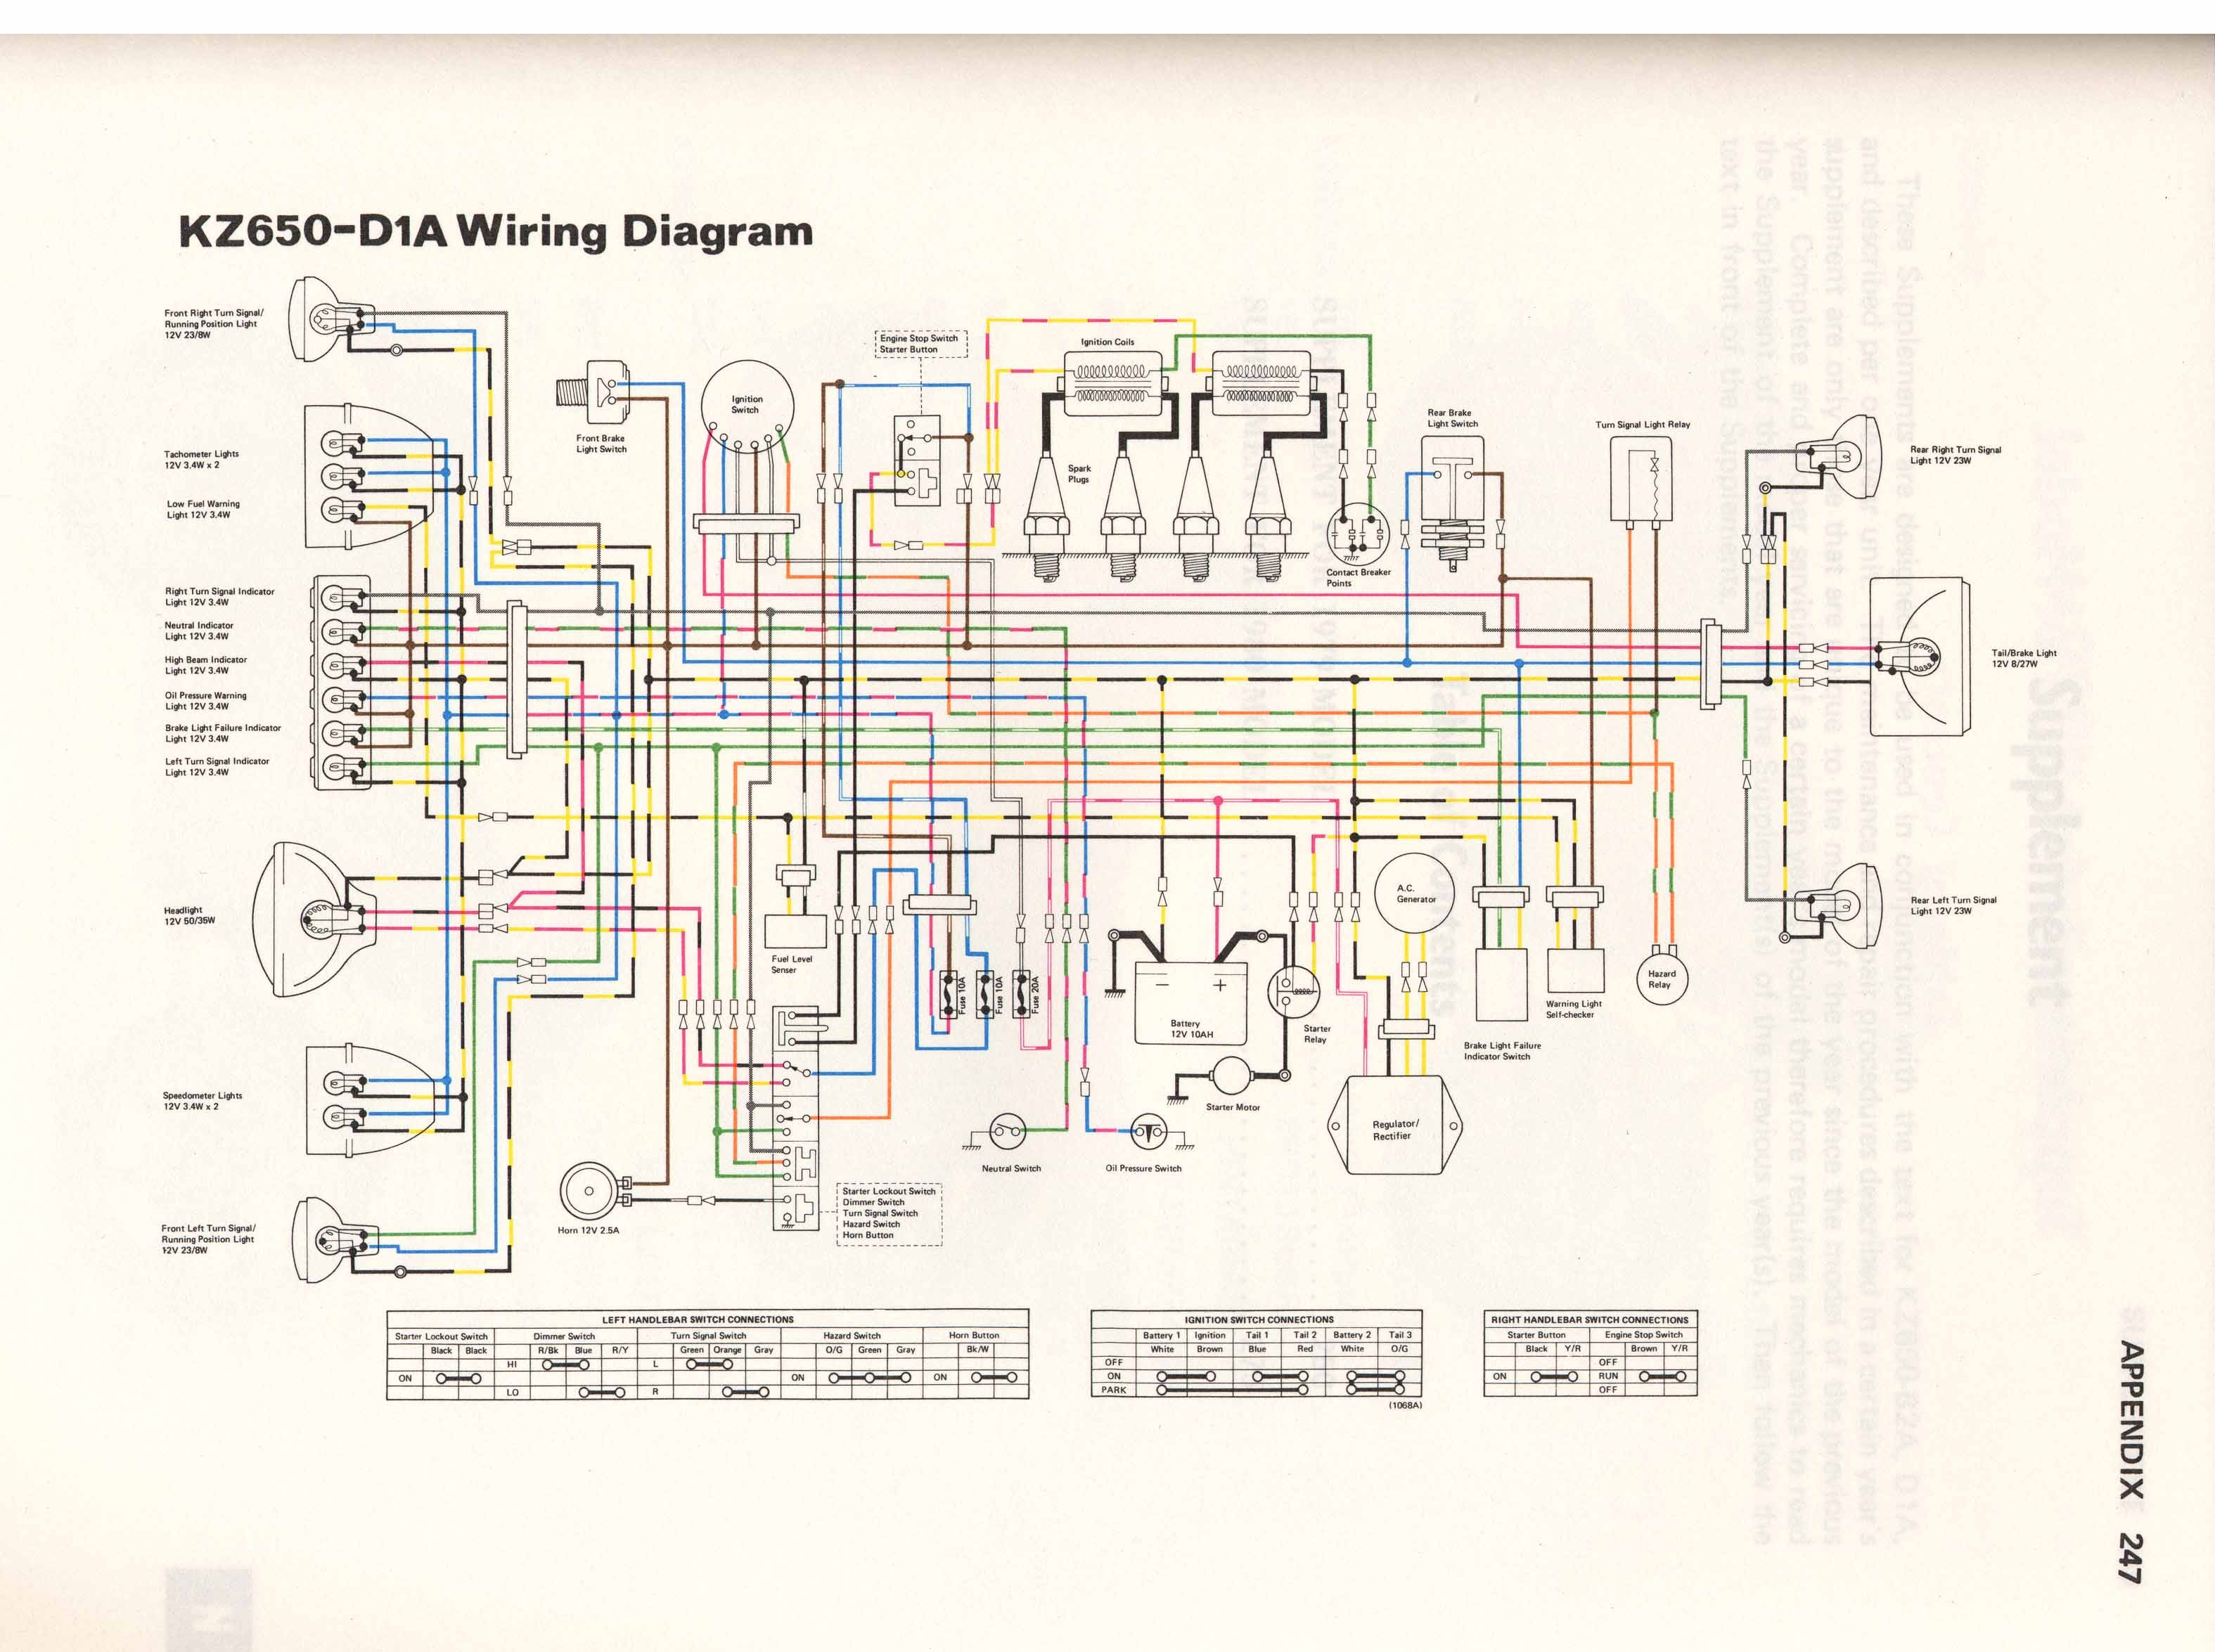 1982 Kawasaki Kz1300 Wiring Diagrams Electrical Diagram 1978 750 Well Detailed U2022 Inviter